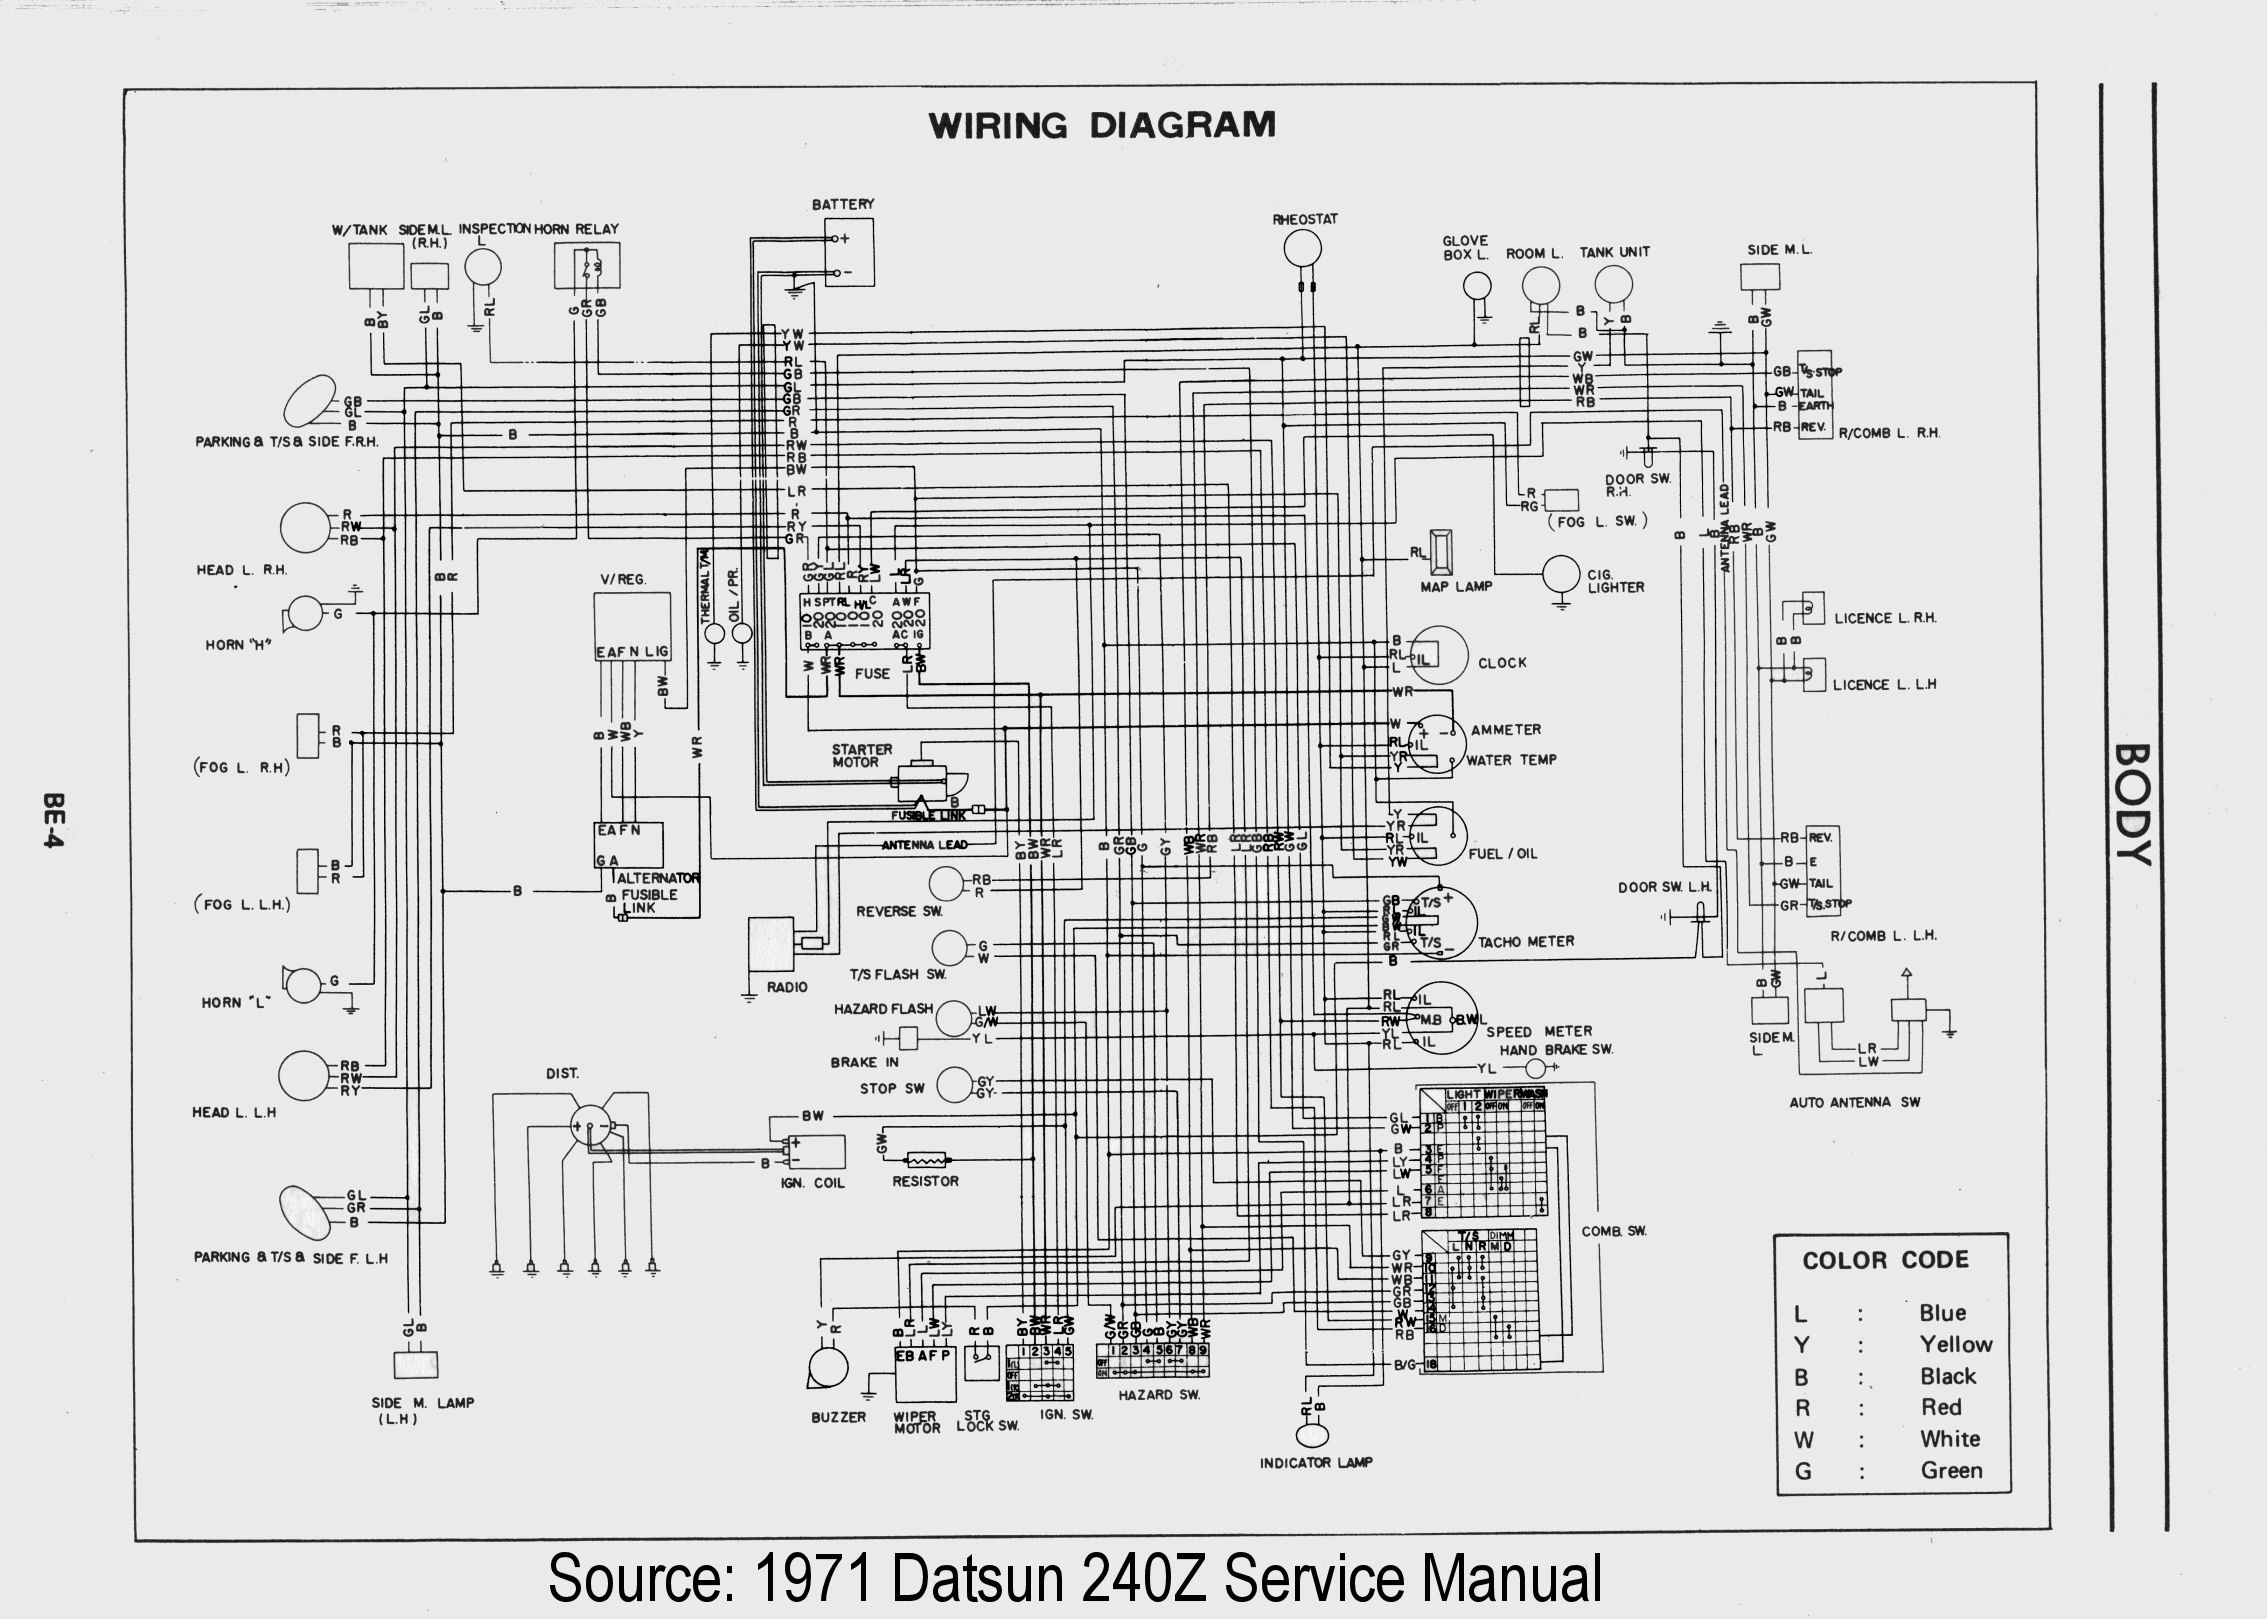 70 Plymouth Road Runner Wiring Diagram Free Download Wiring Diagrams